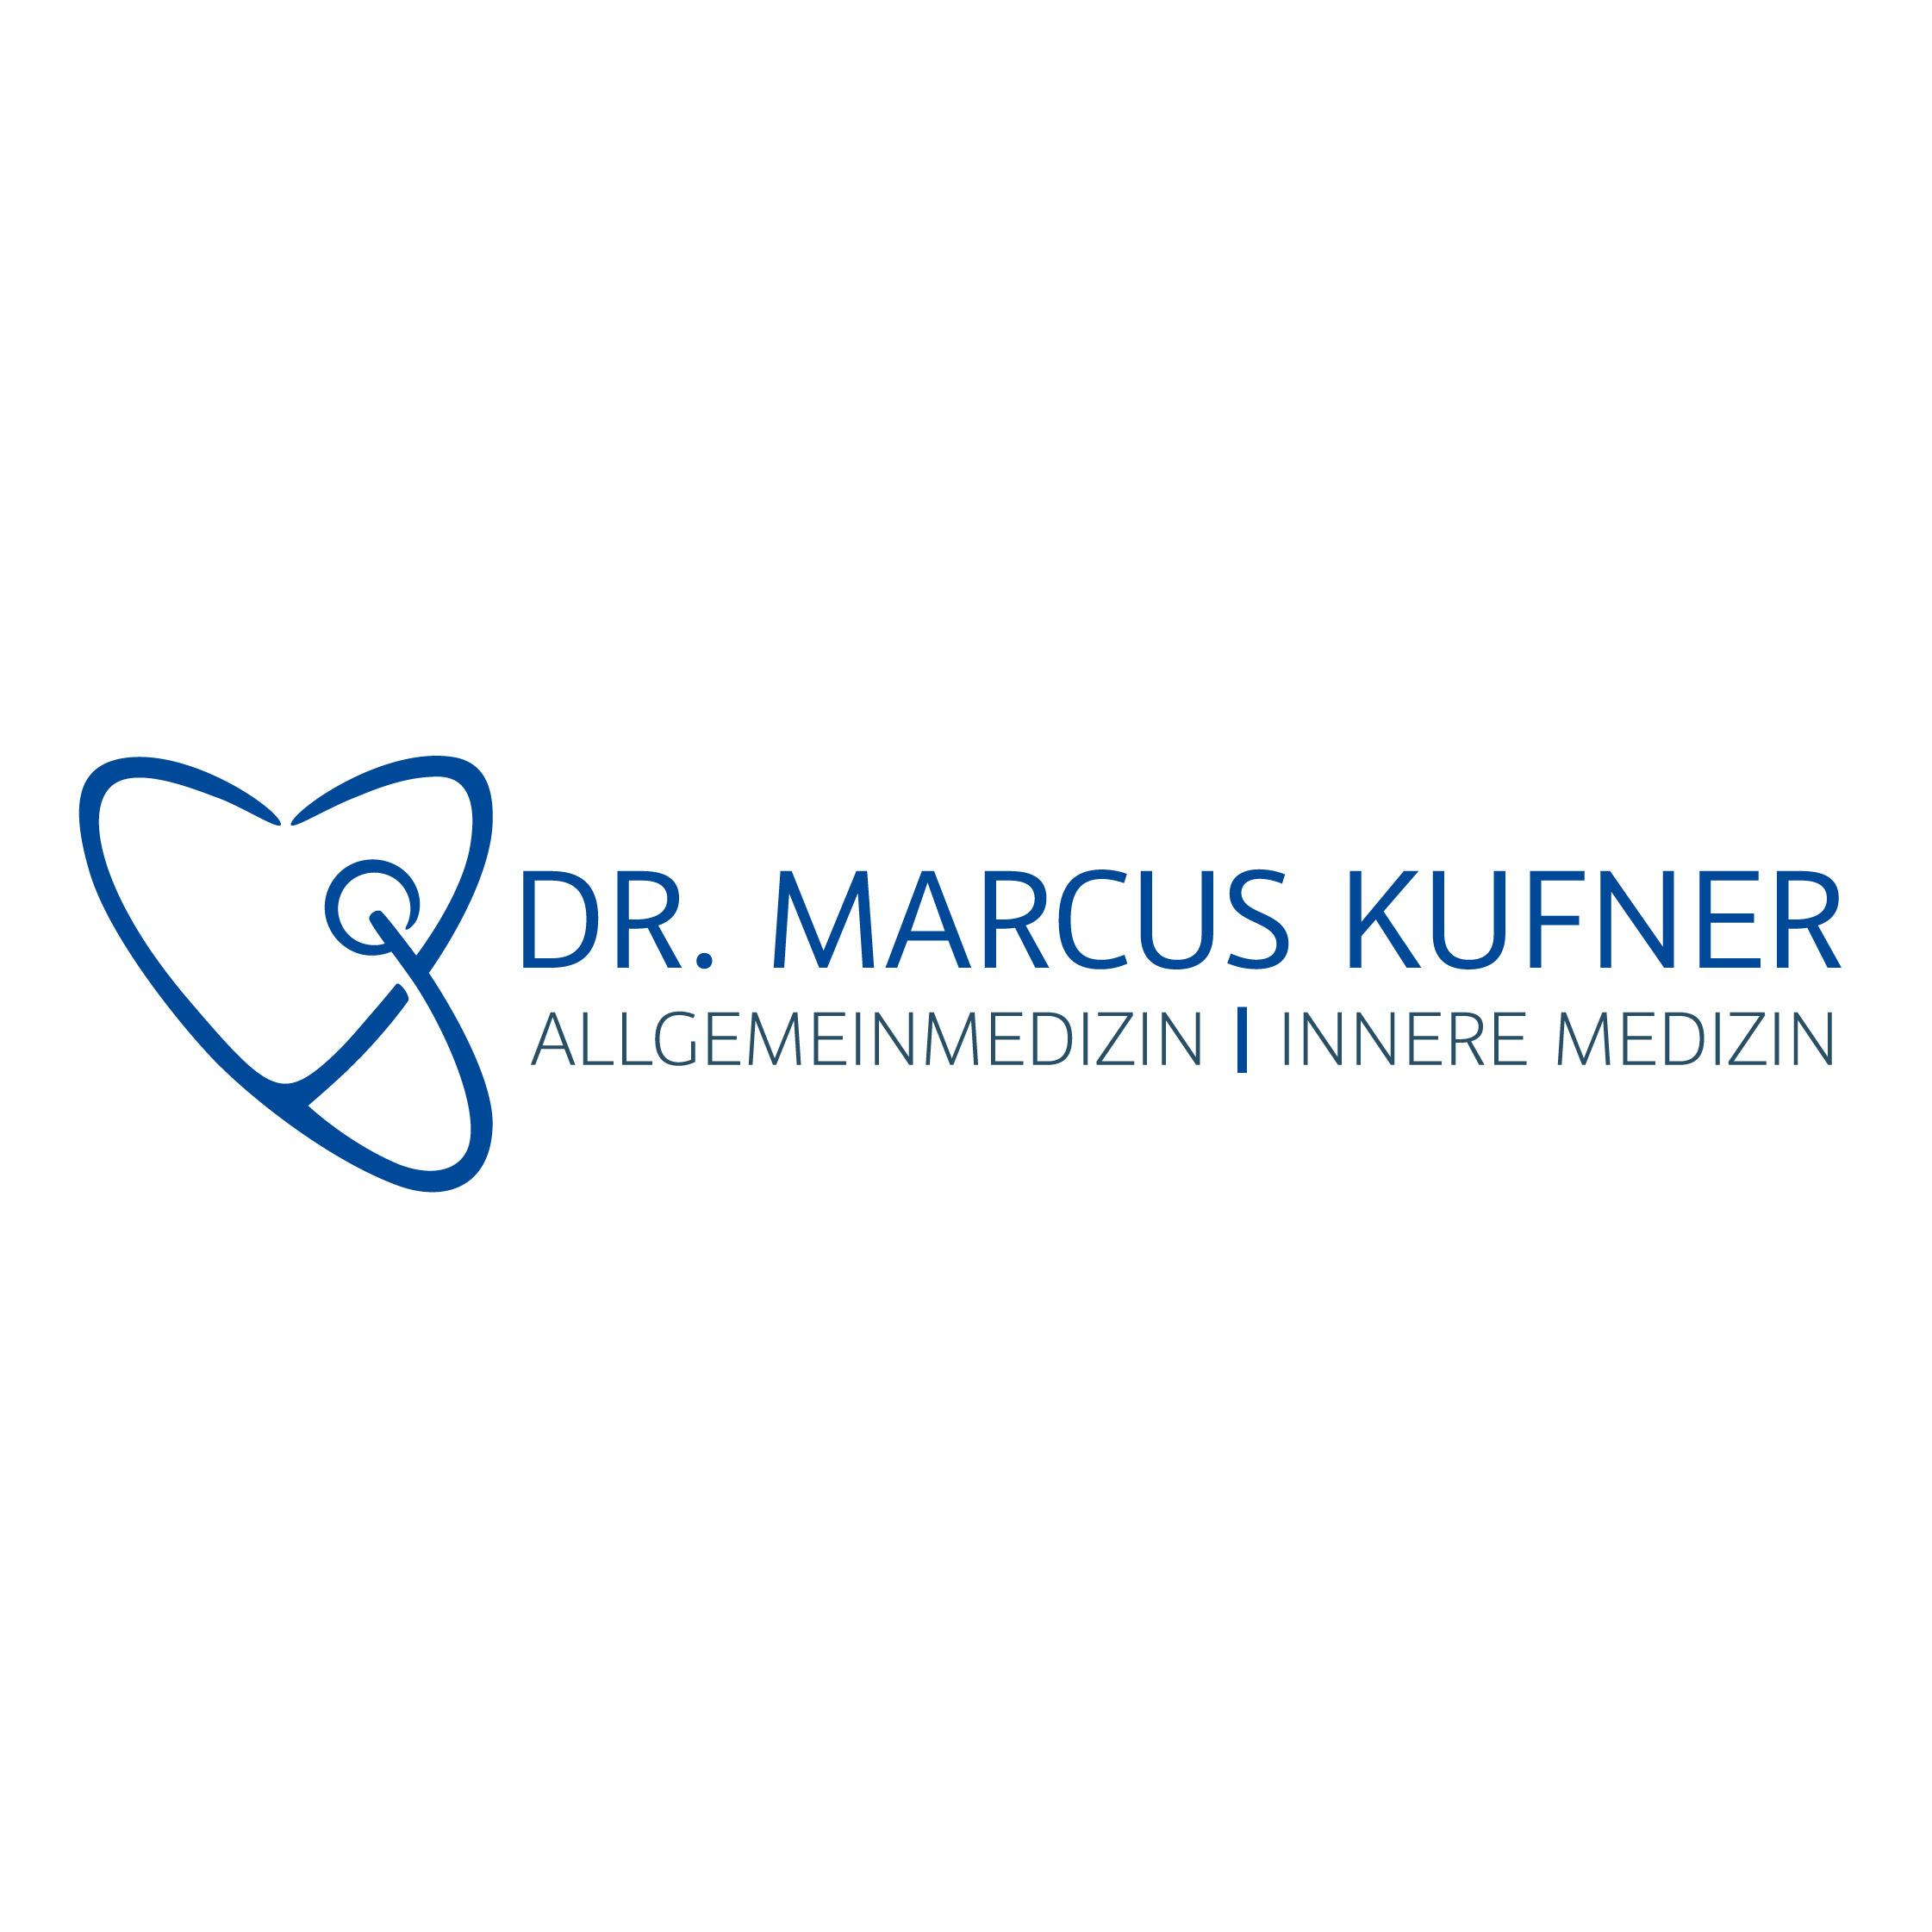 Dr. Marcus Kufner